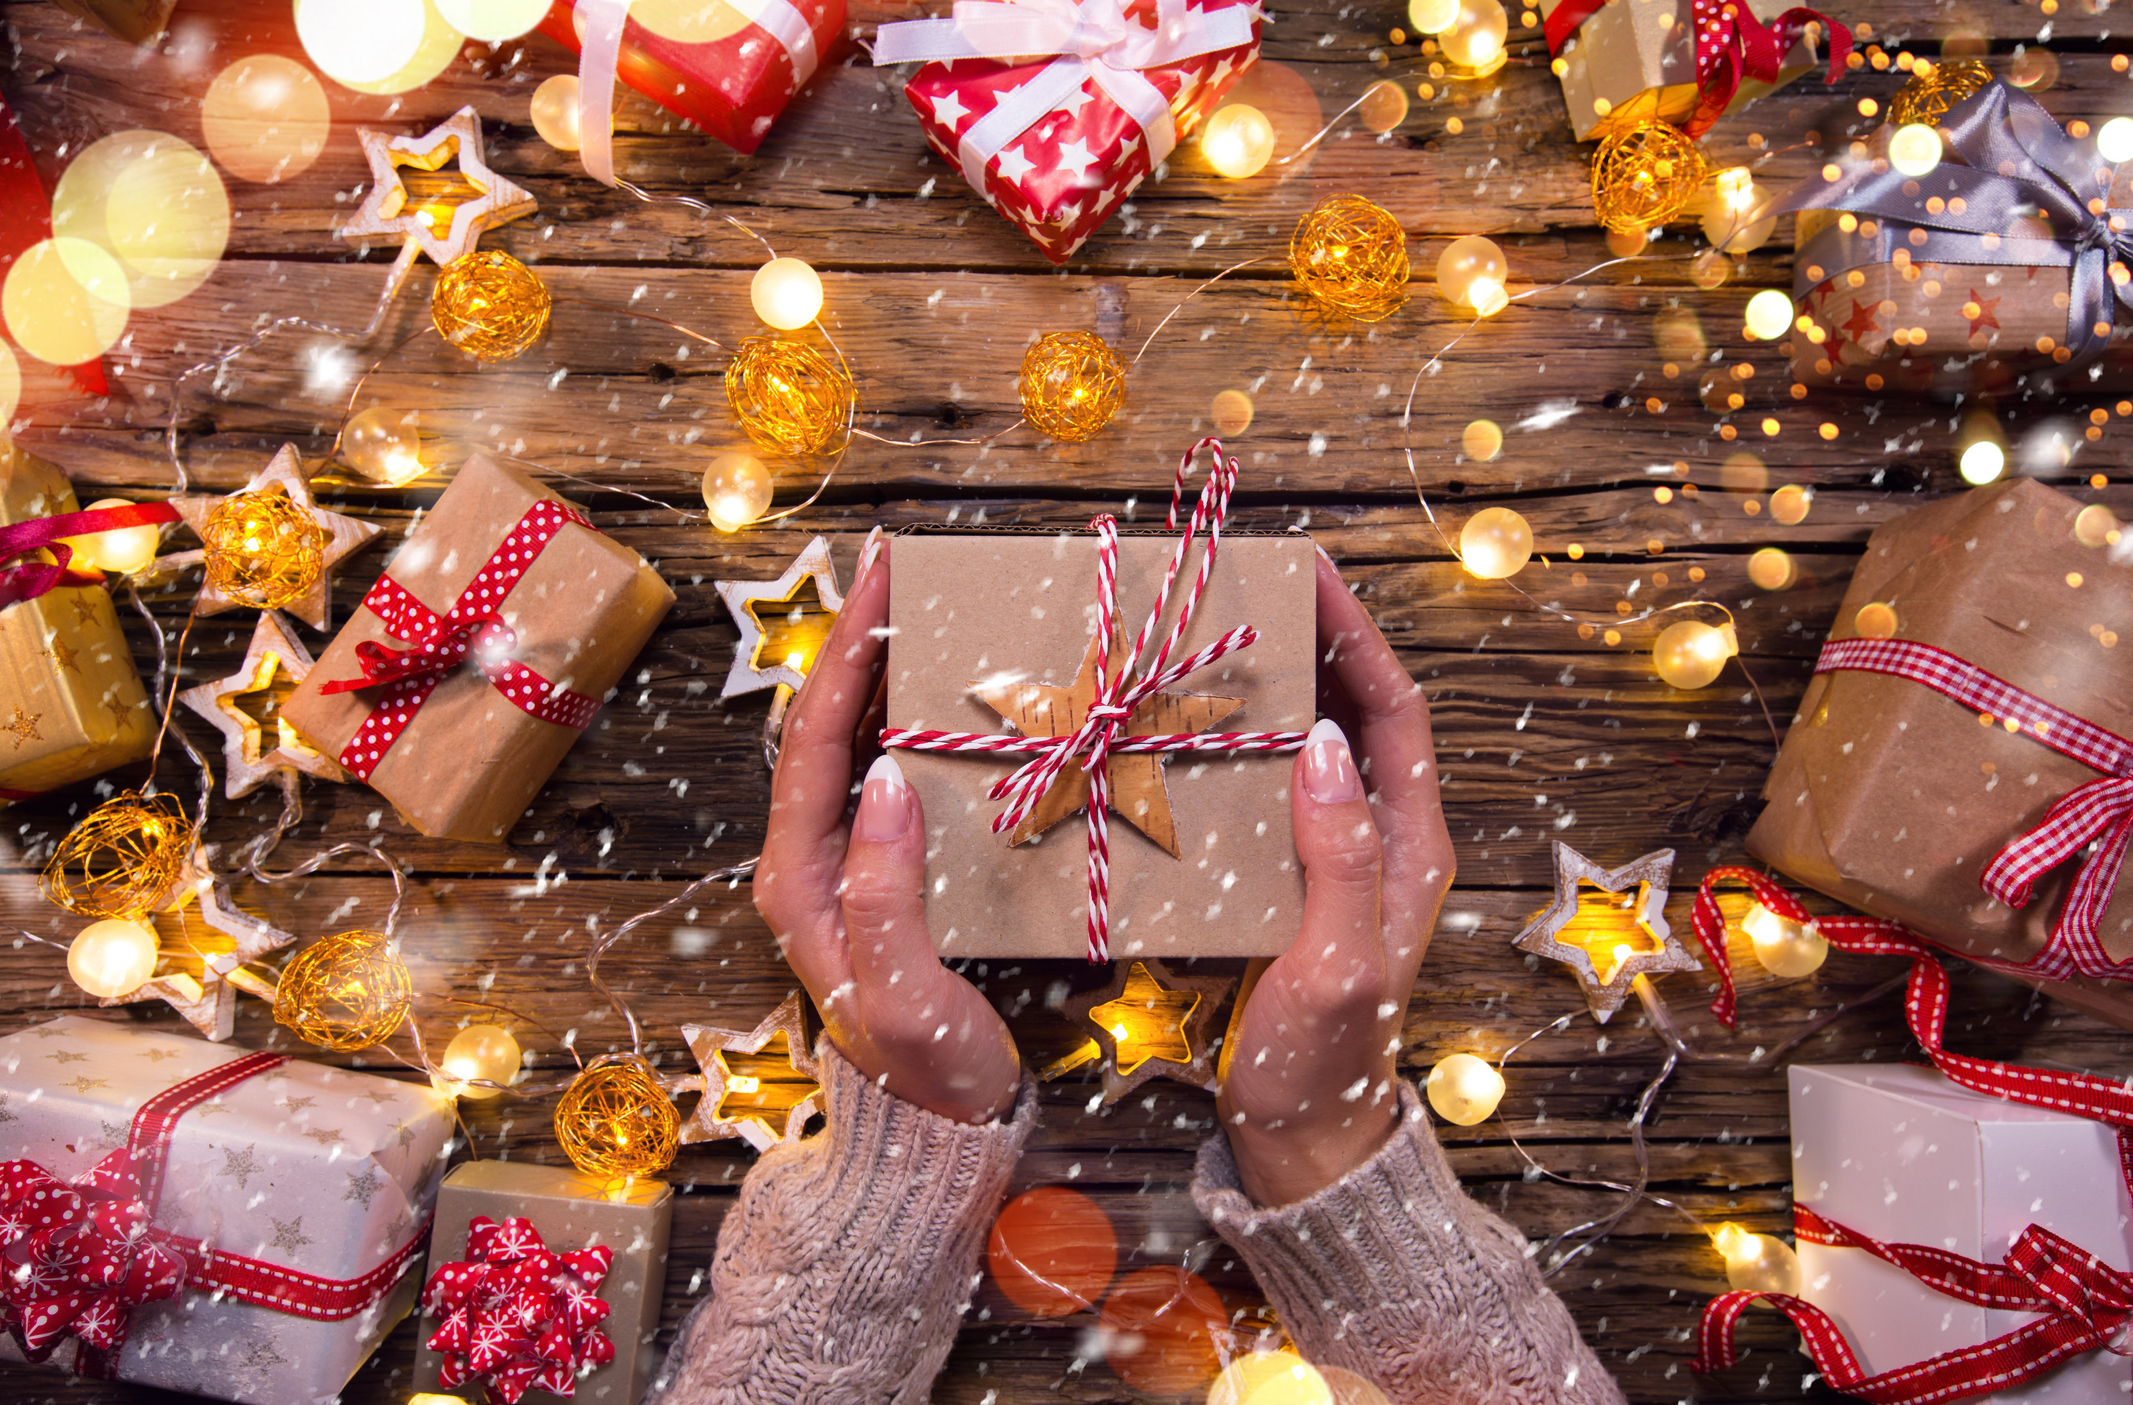 A woman's hands holding a wrapped gift over a table of lights and presents.